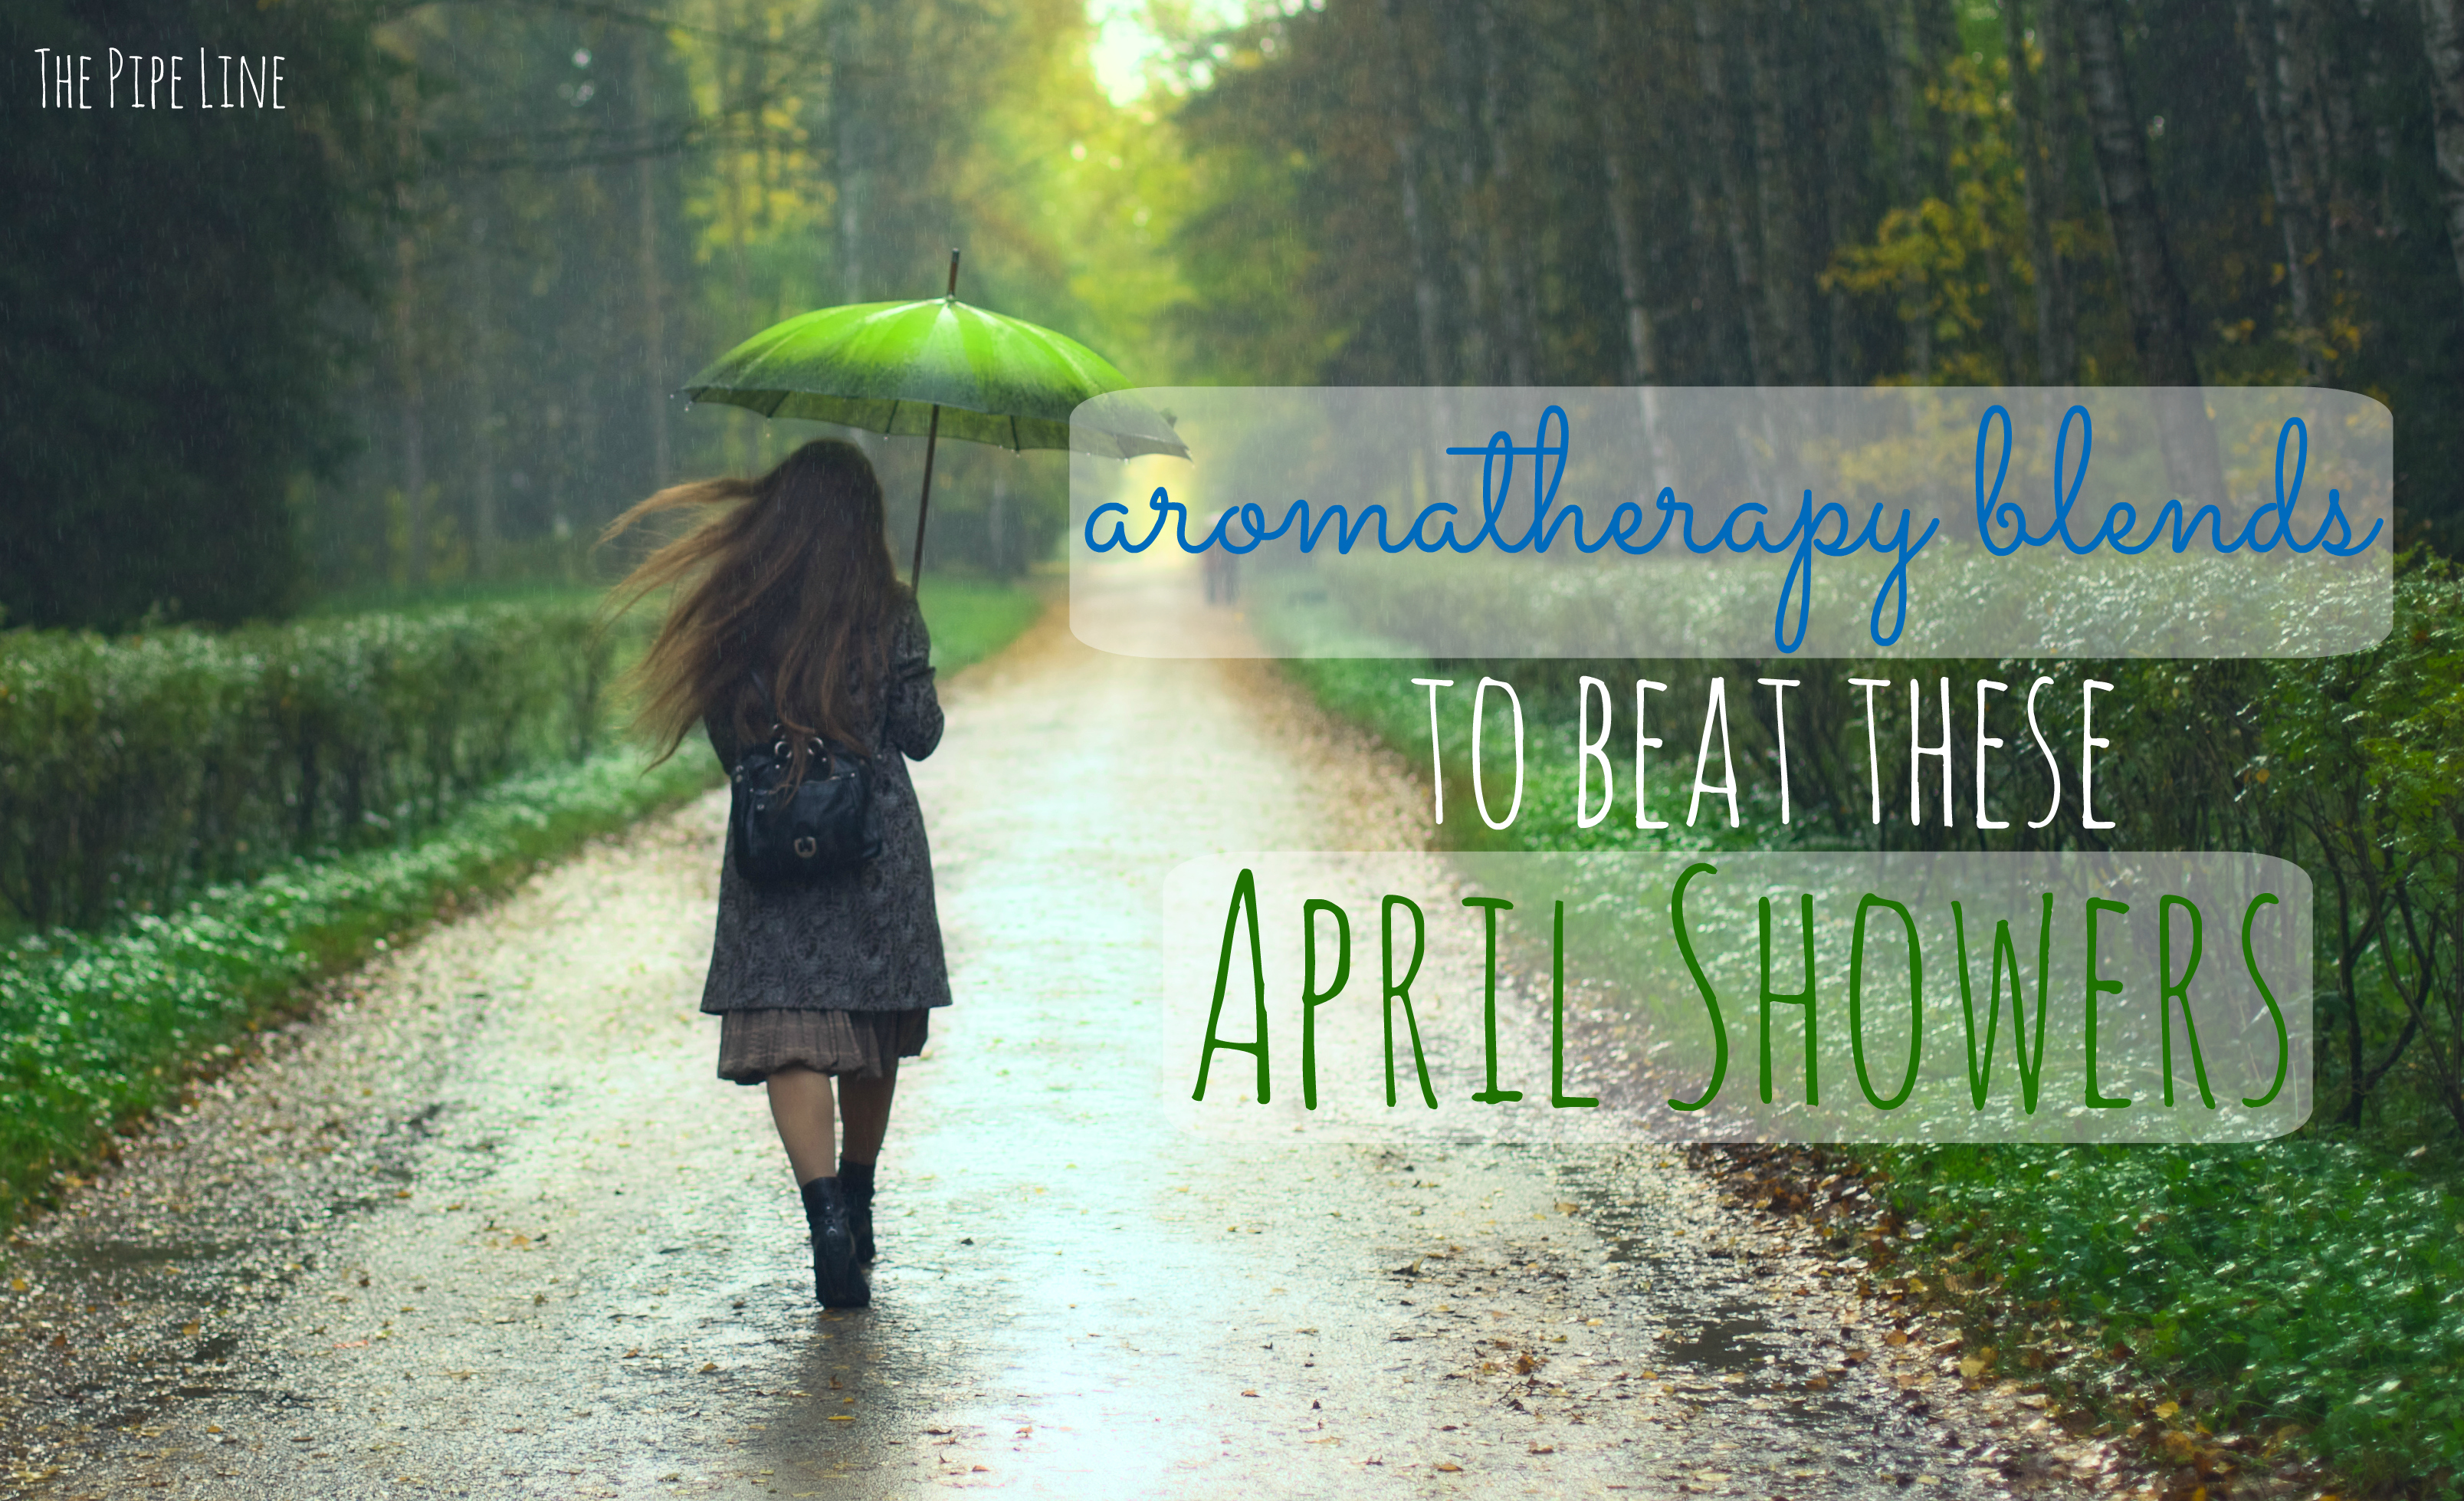 Piping Rock - The Pipe Line - Aromatherapy Blends to Beat These April Showers